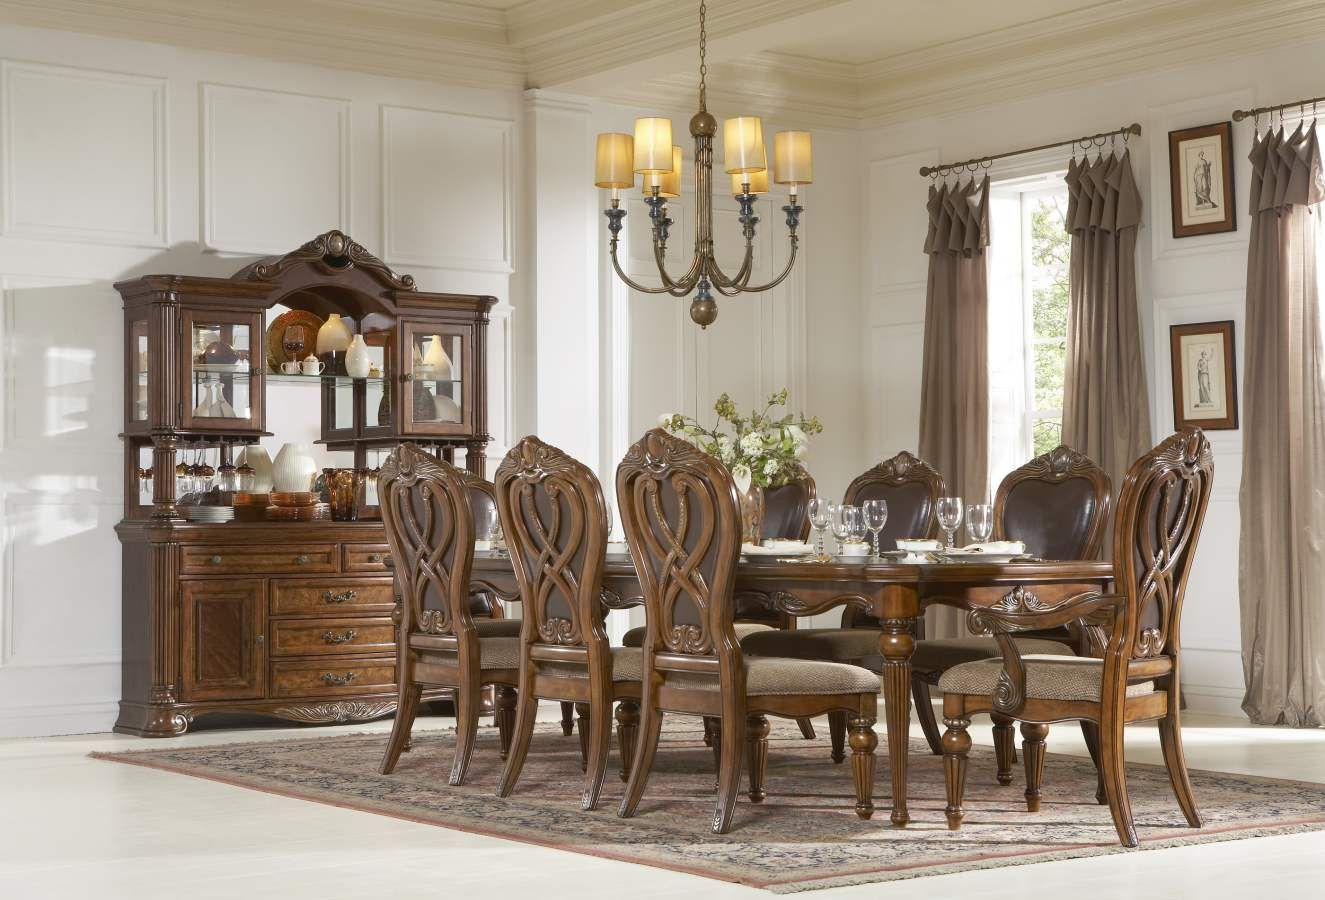 Formal dining room design ideas  Golden Eagle Antique Caramel Wood Metal Glass Buffet  China